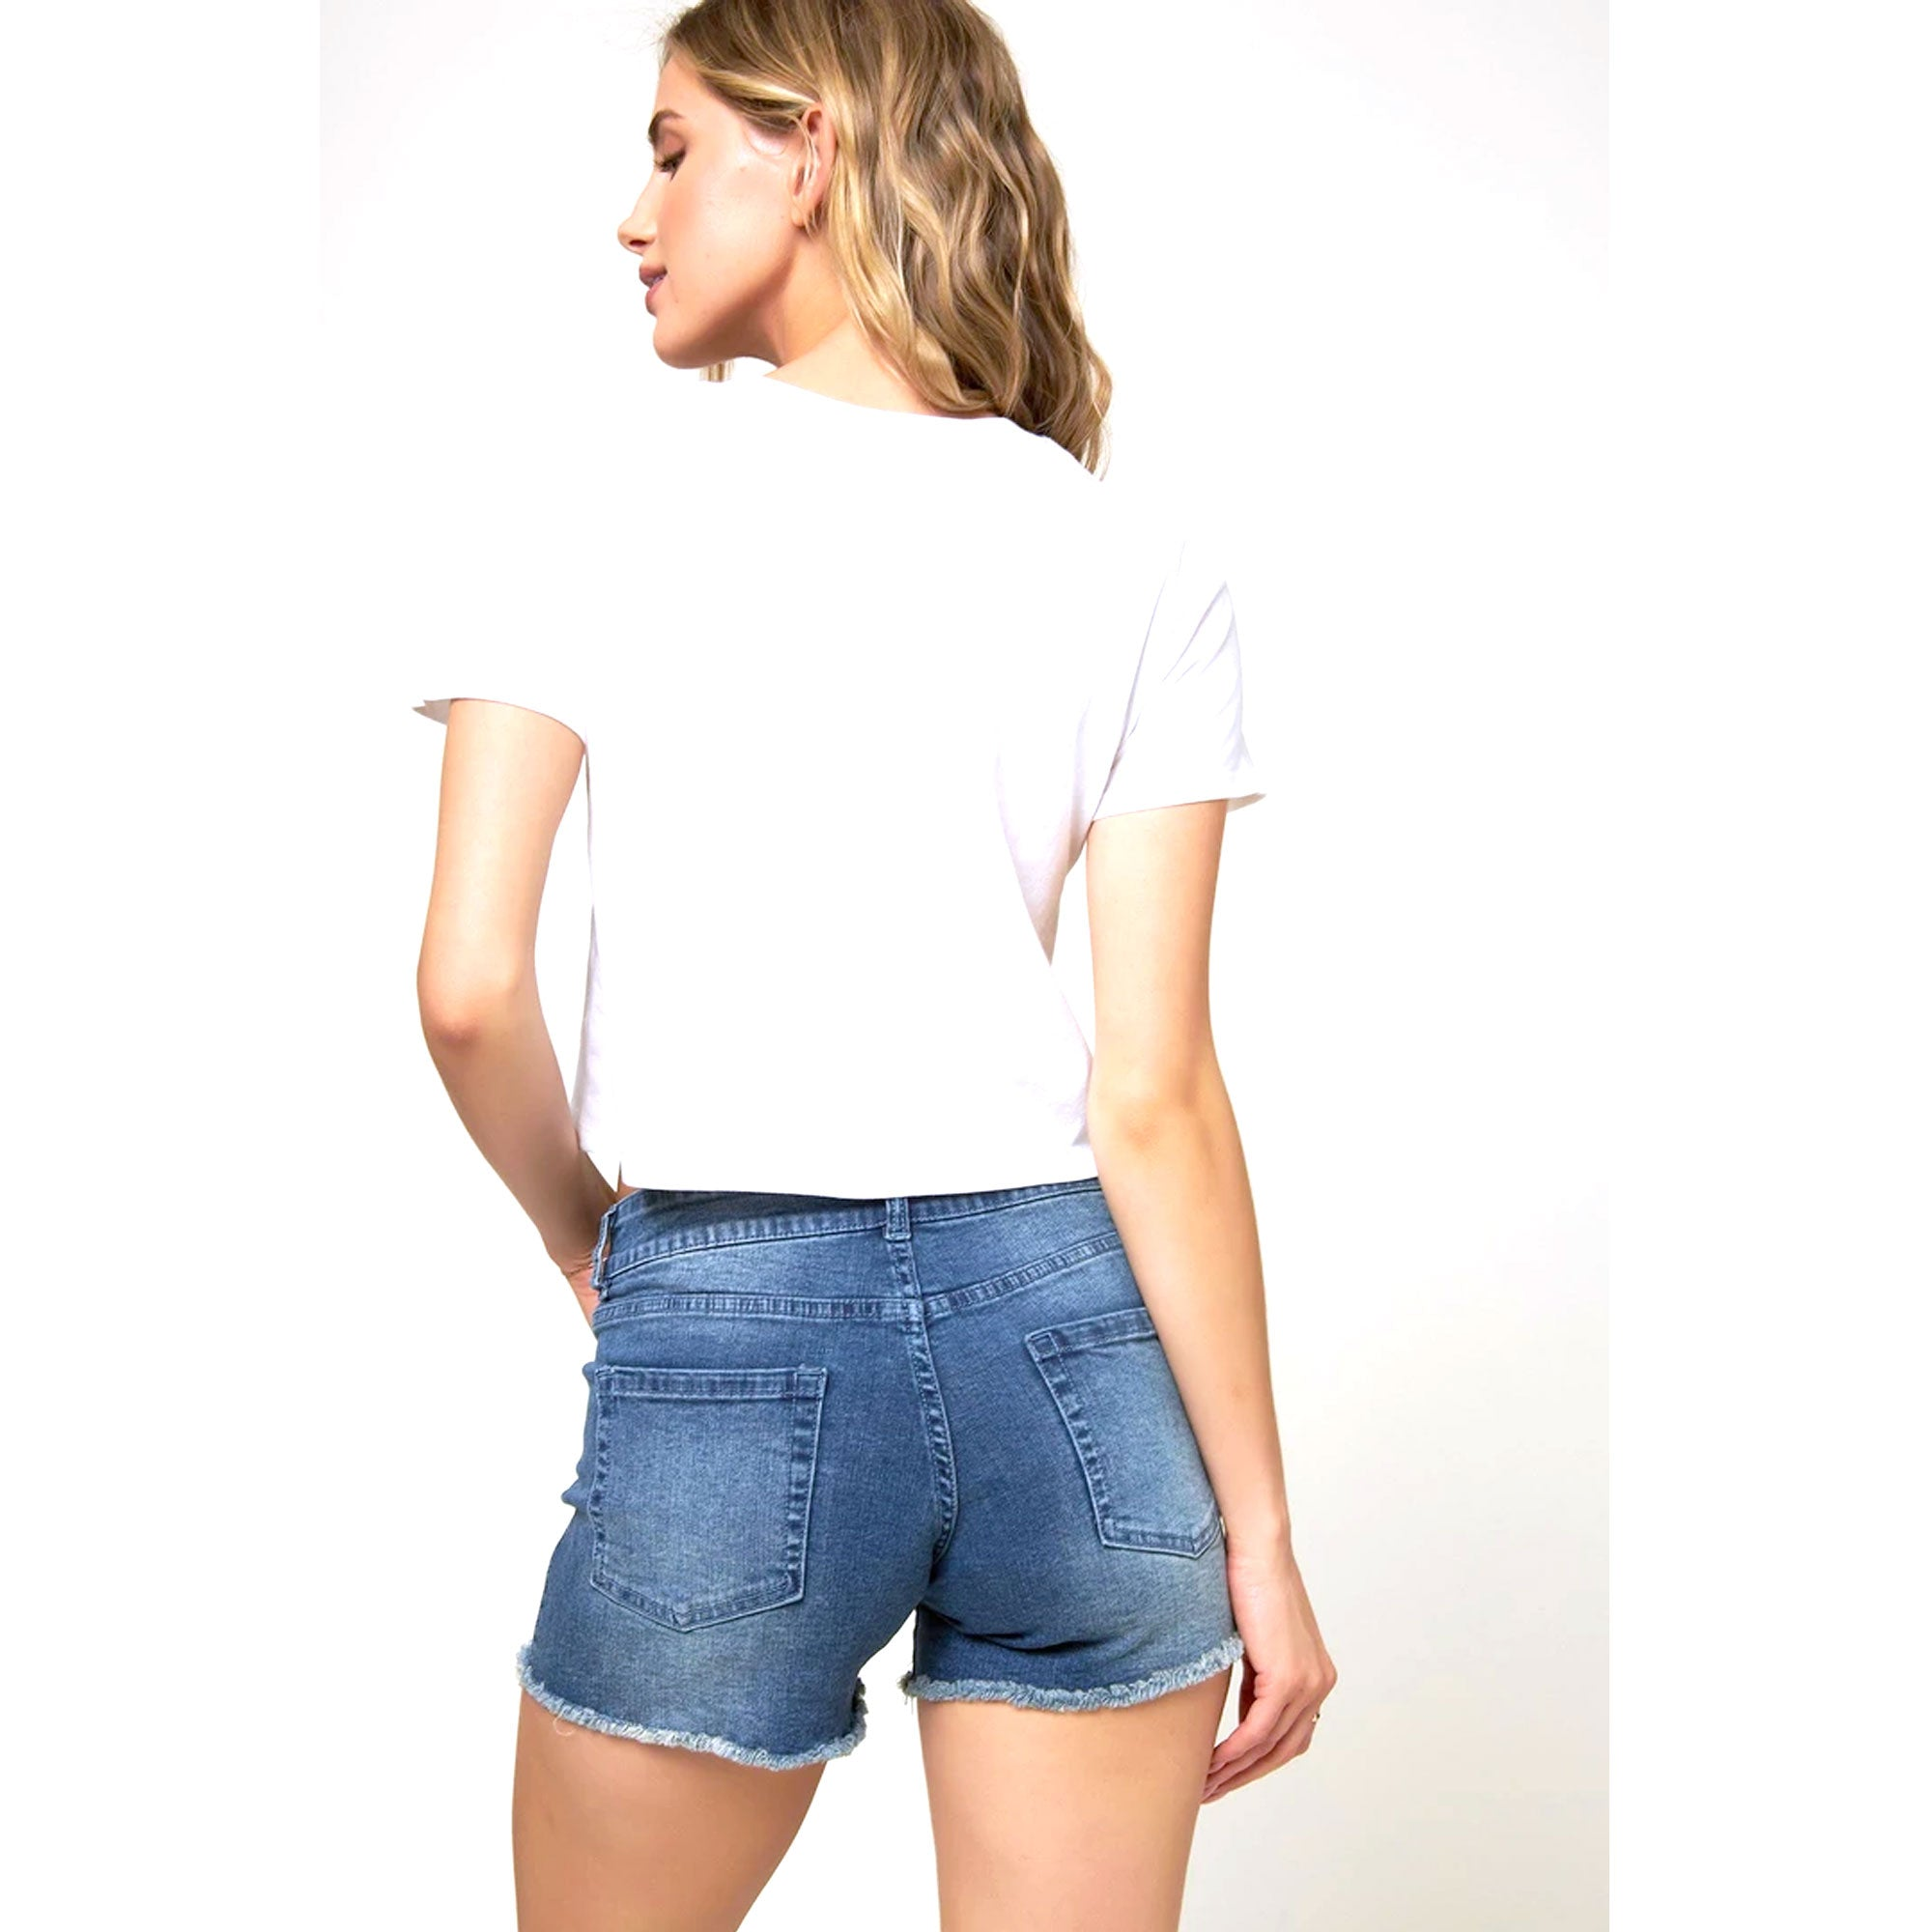 O'Neill Cody Women's Denim Shorts